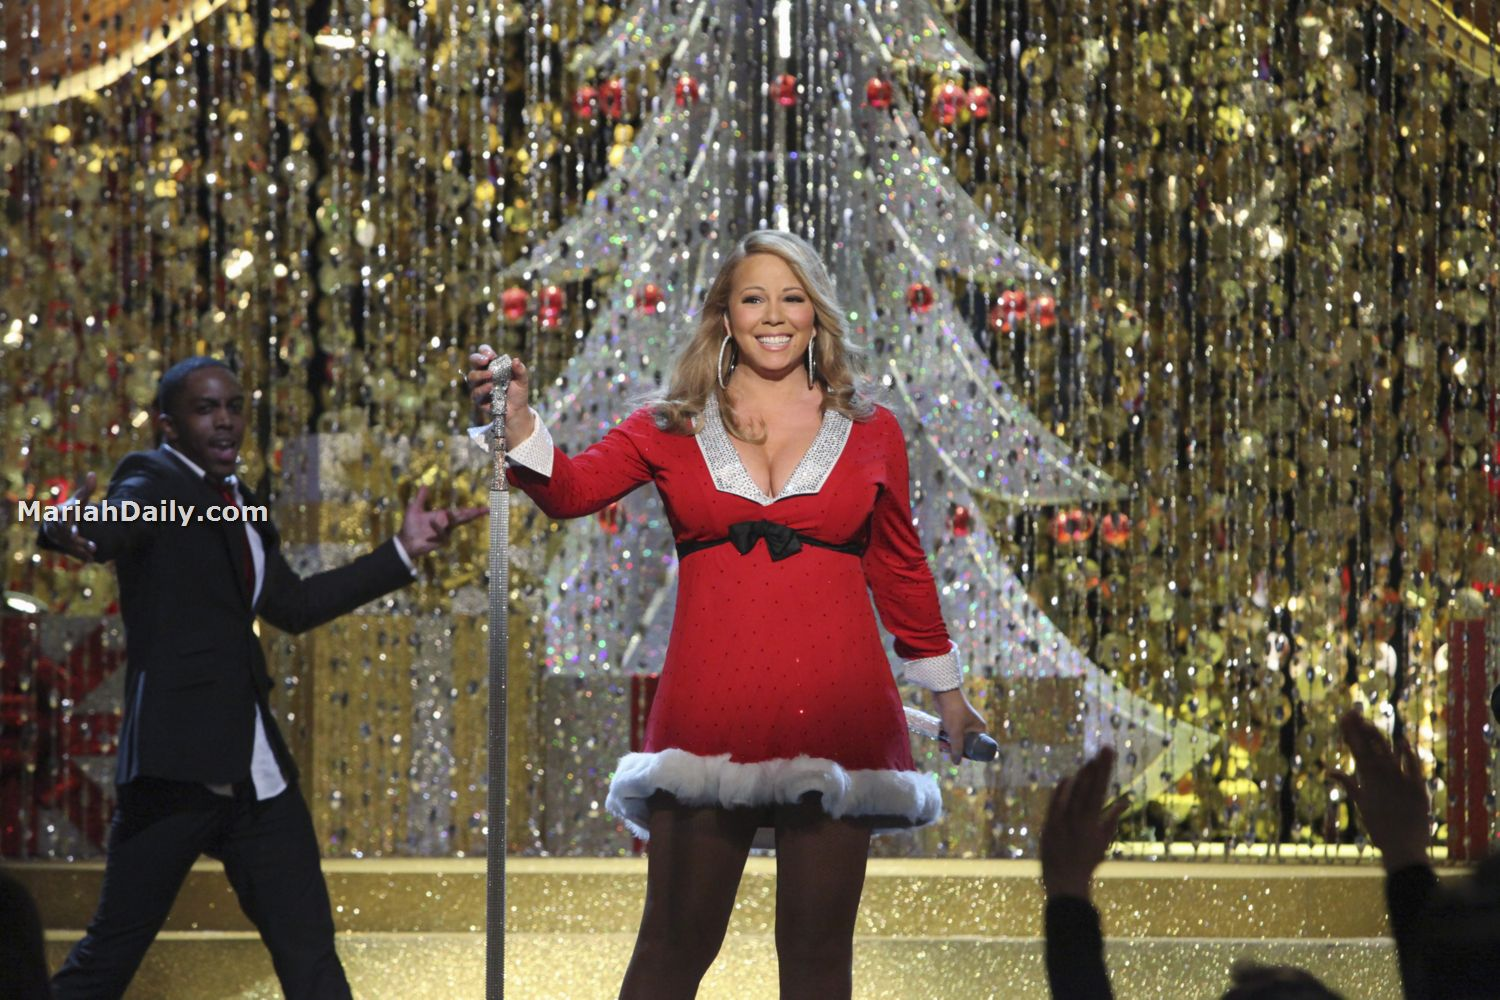 mariah22 Hot Shots: Mariah Carey Dazzles In Christmas Special